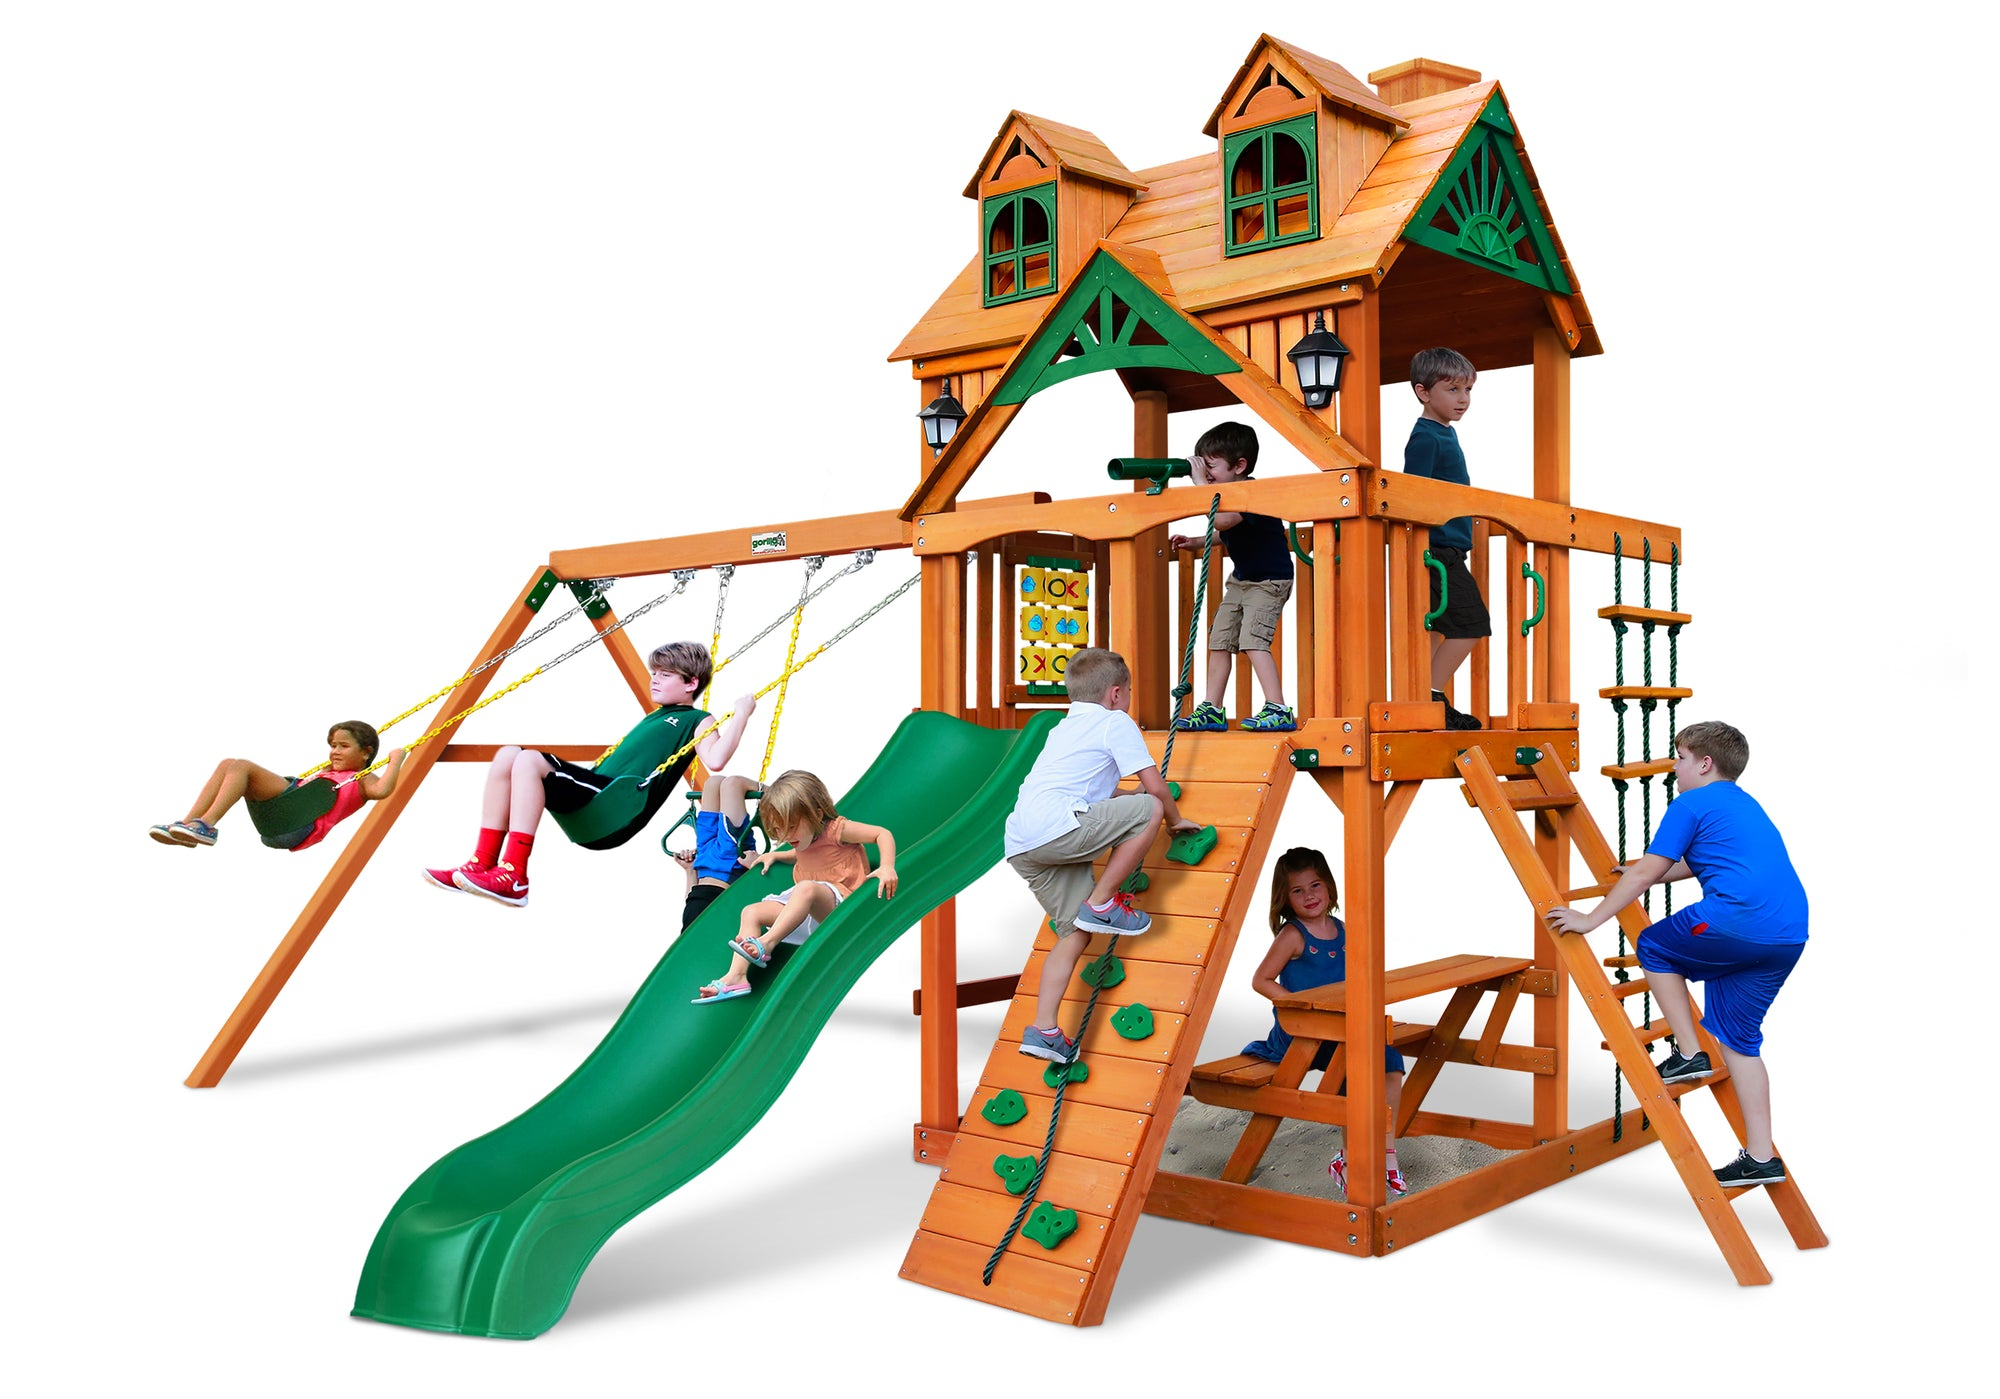 Gorilla Playsets Chateau Malibu Wood Roof Swing Set - Swing Set Paradise